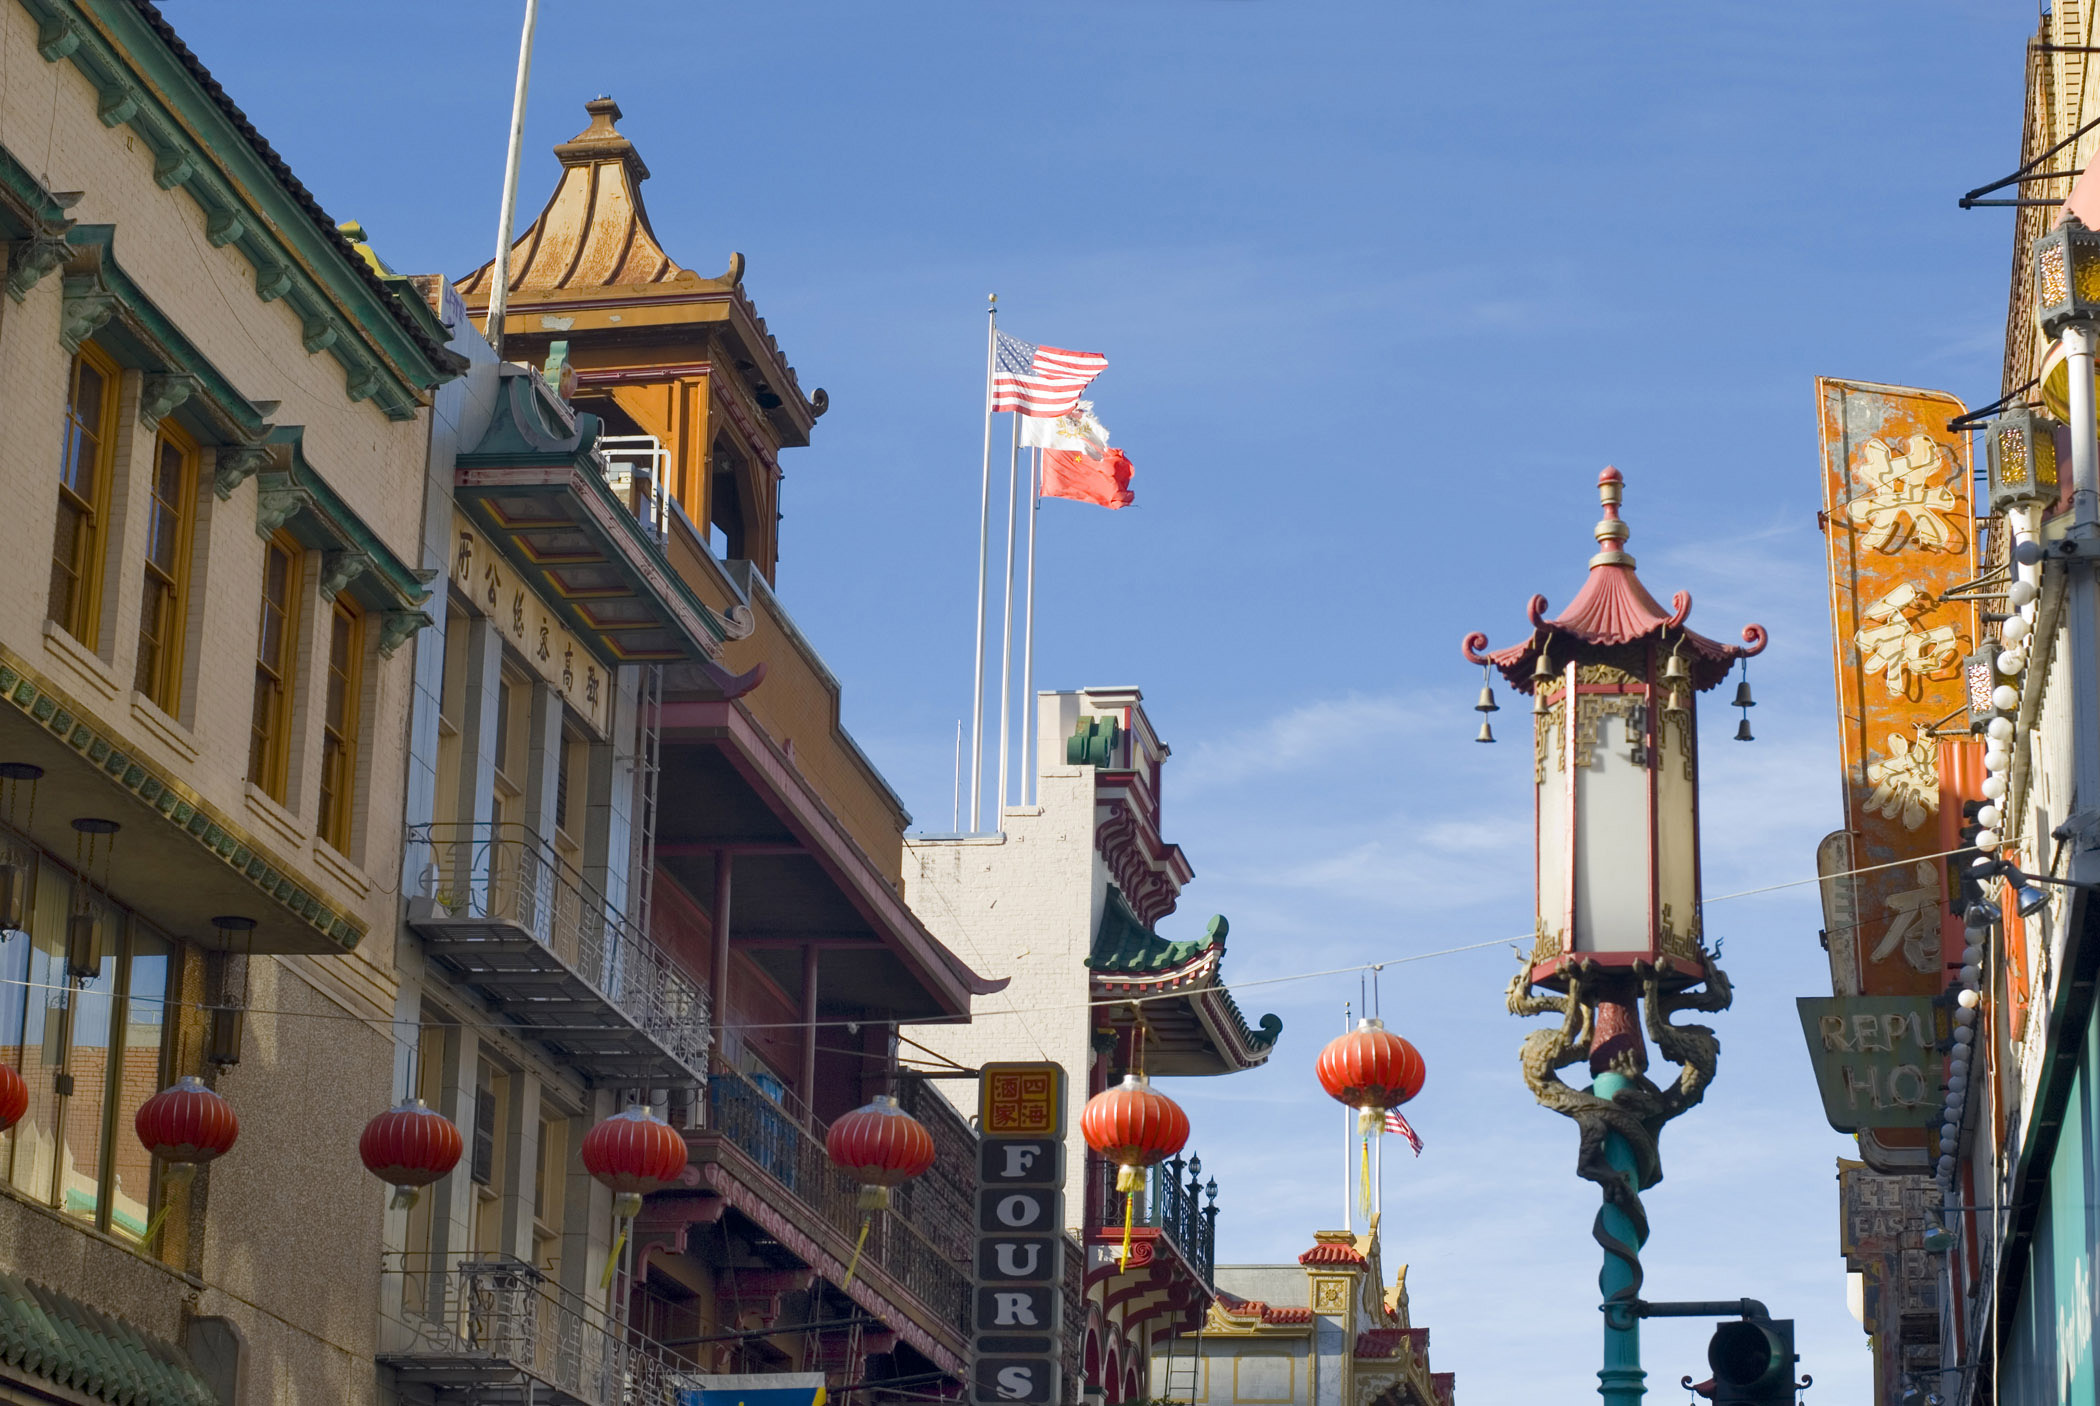 Unique Architectural Buildings at China Town on Lighter Blue Sky Background.